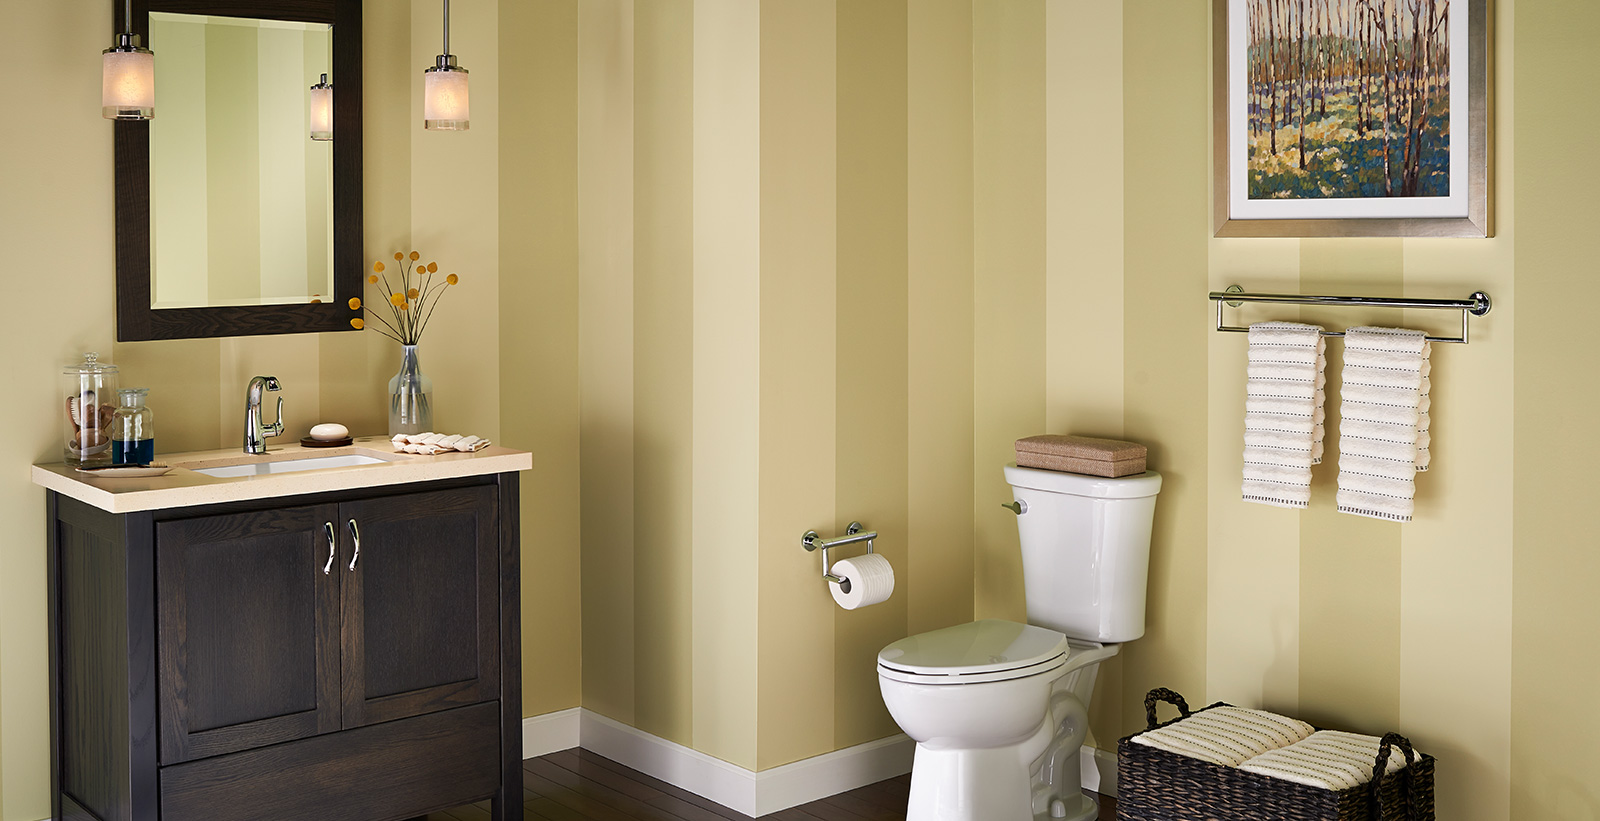 Soothing styled bathroom with light brown, white, brown vertically striped walls, and dark brown wooden vanity.